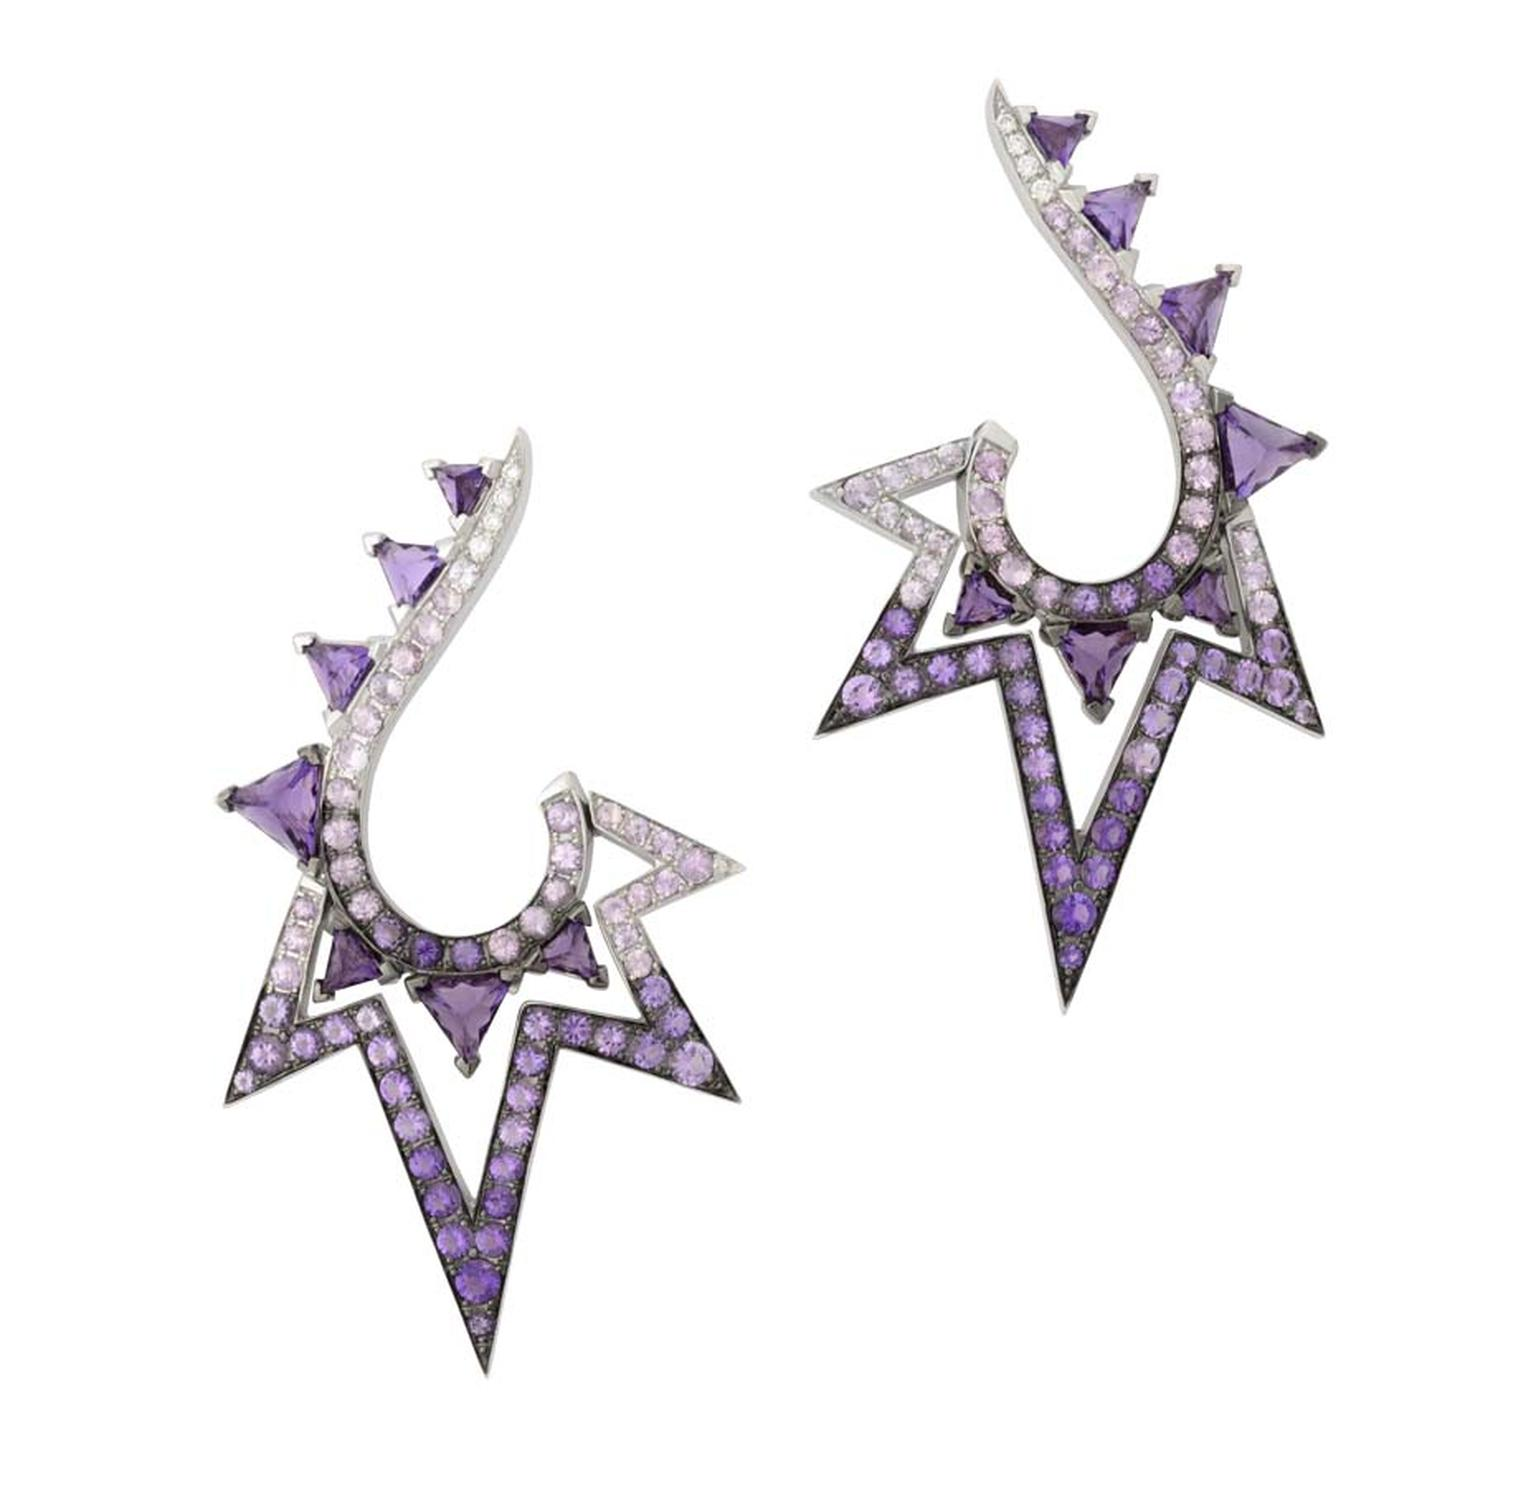 David Bowie's alter ego Ziggy Stardust was the inspiration for Stephen Webster's Lady Stardust collection, which includes this pair of geometric-style earrings.